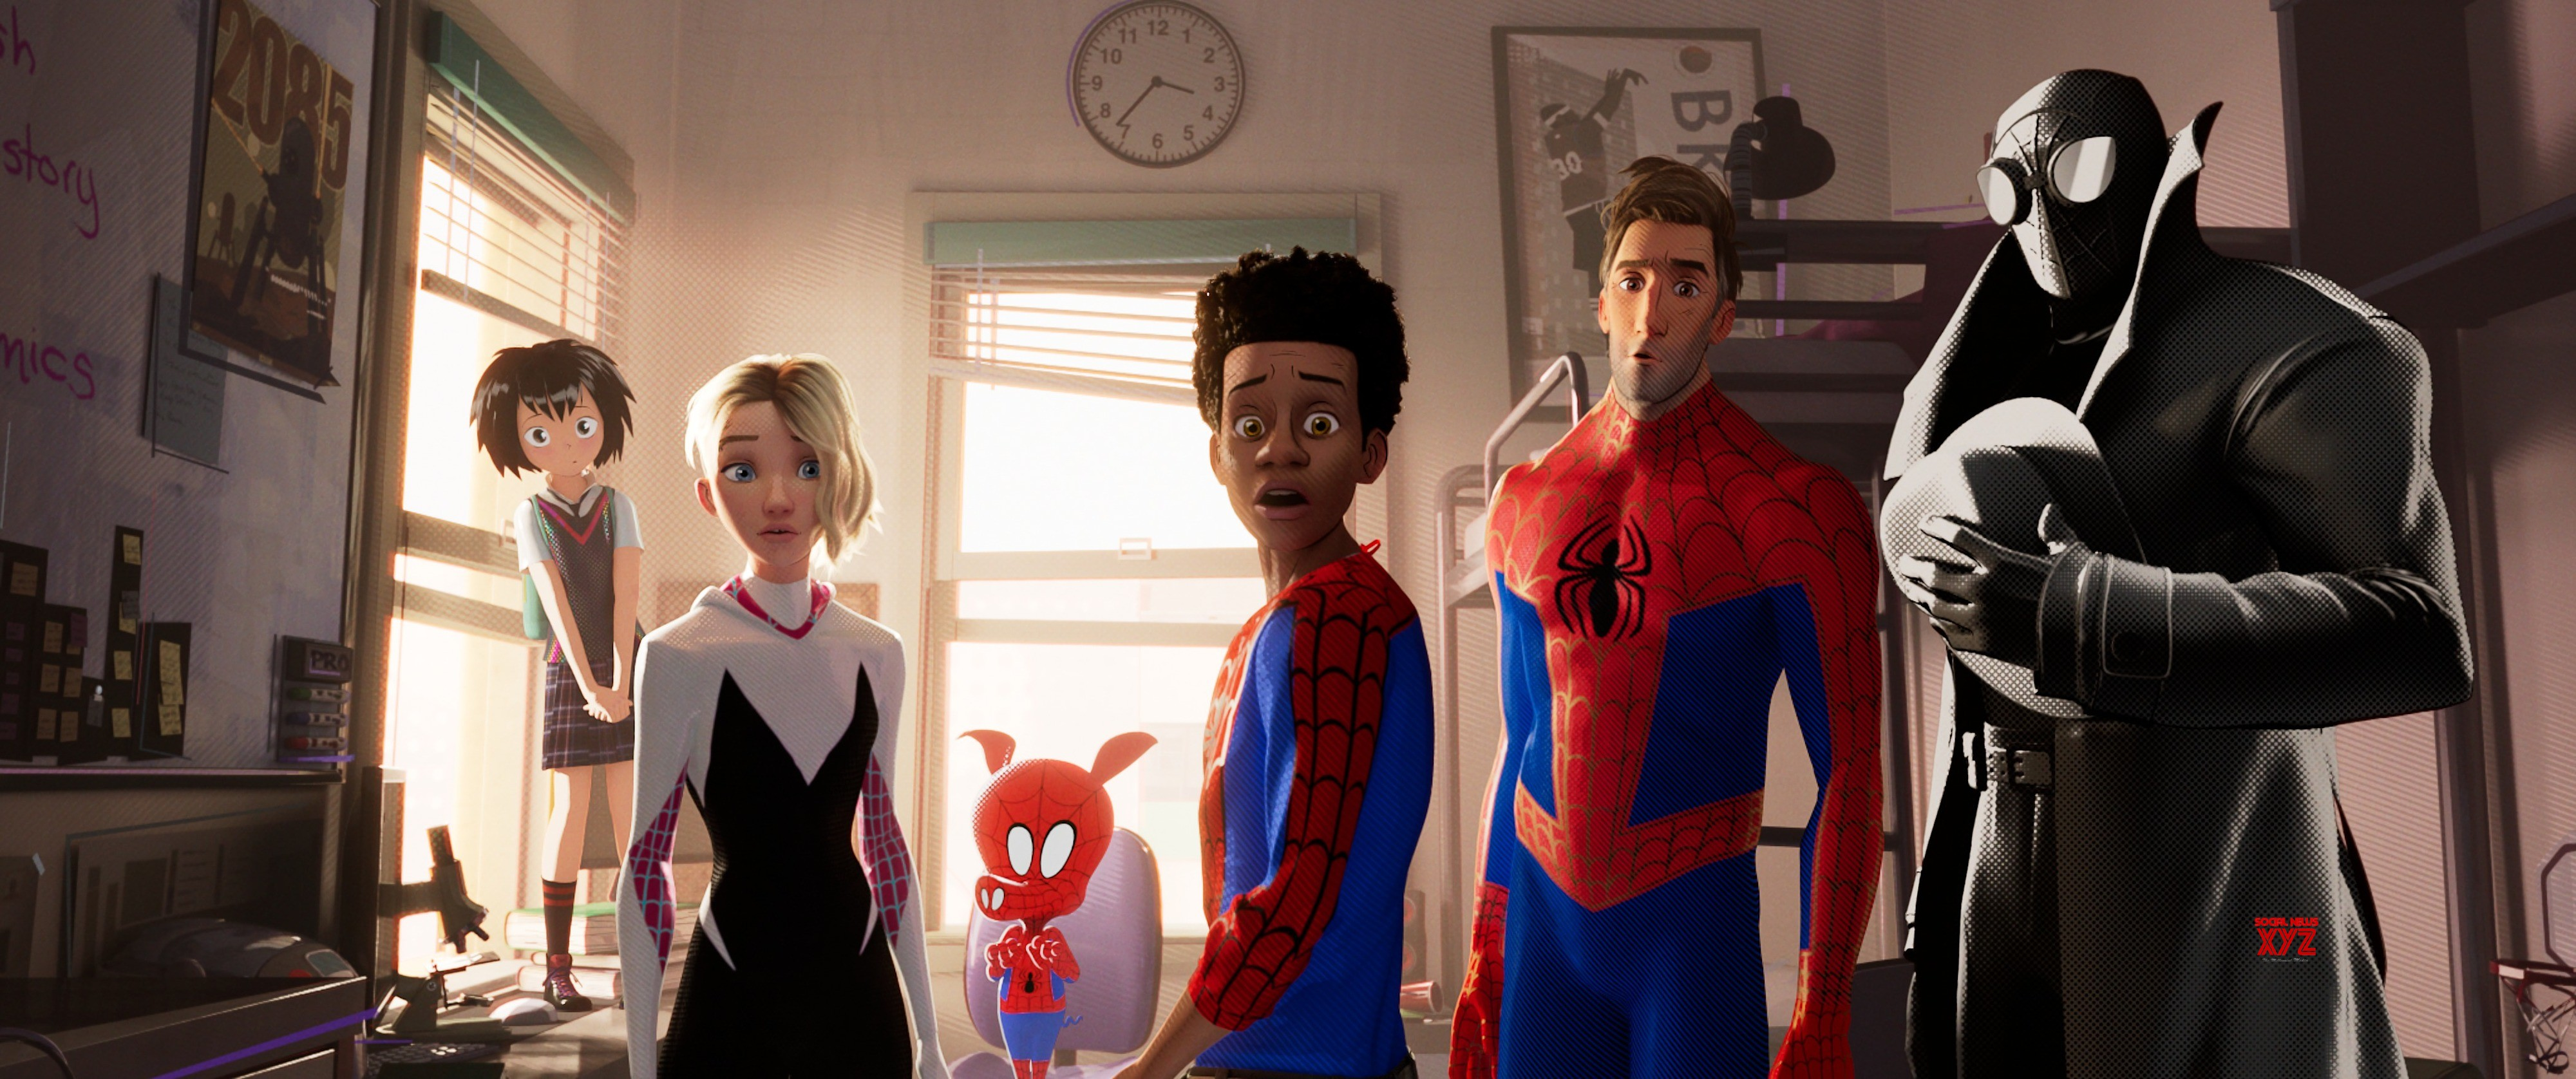 'Spider-man: Into the Spider-verse': Brings the comic book to life  (IANS Review, Rating: ***1/2)